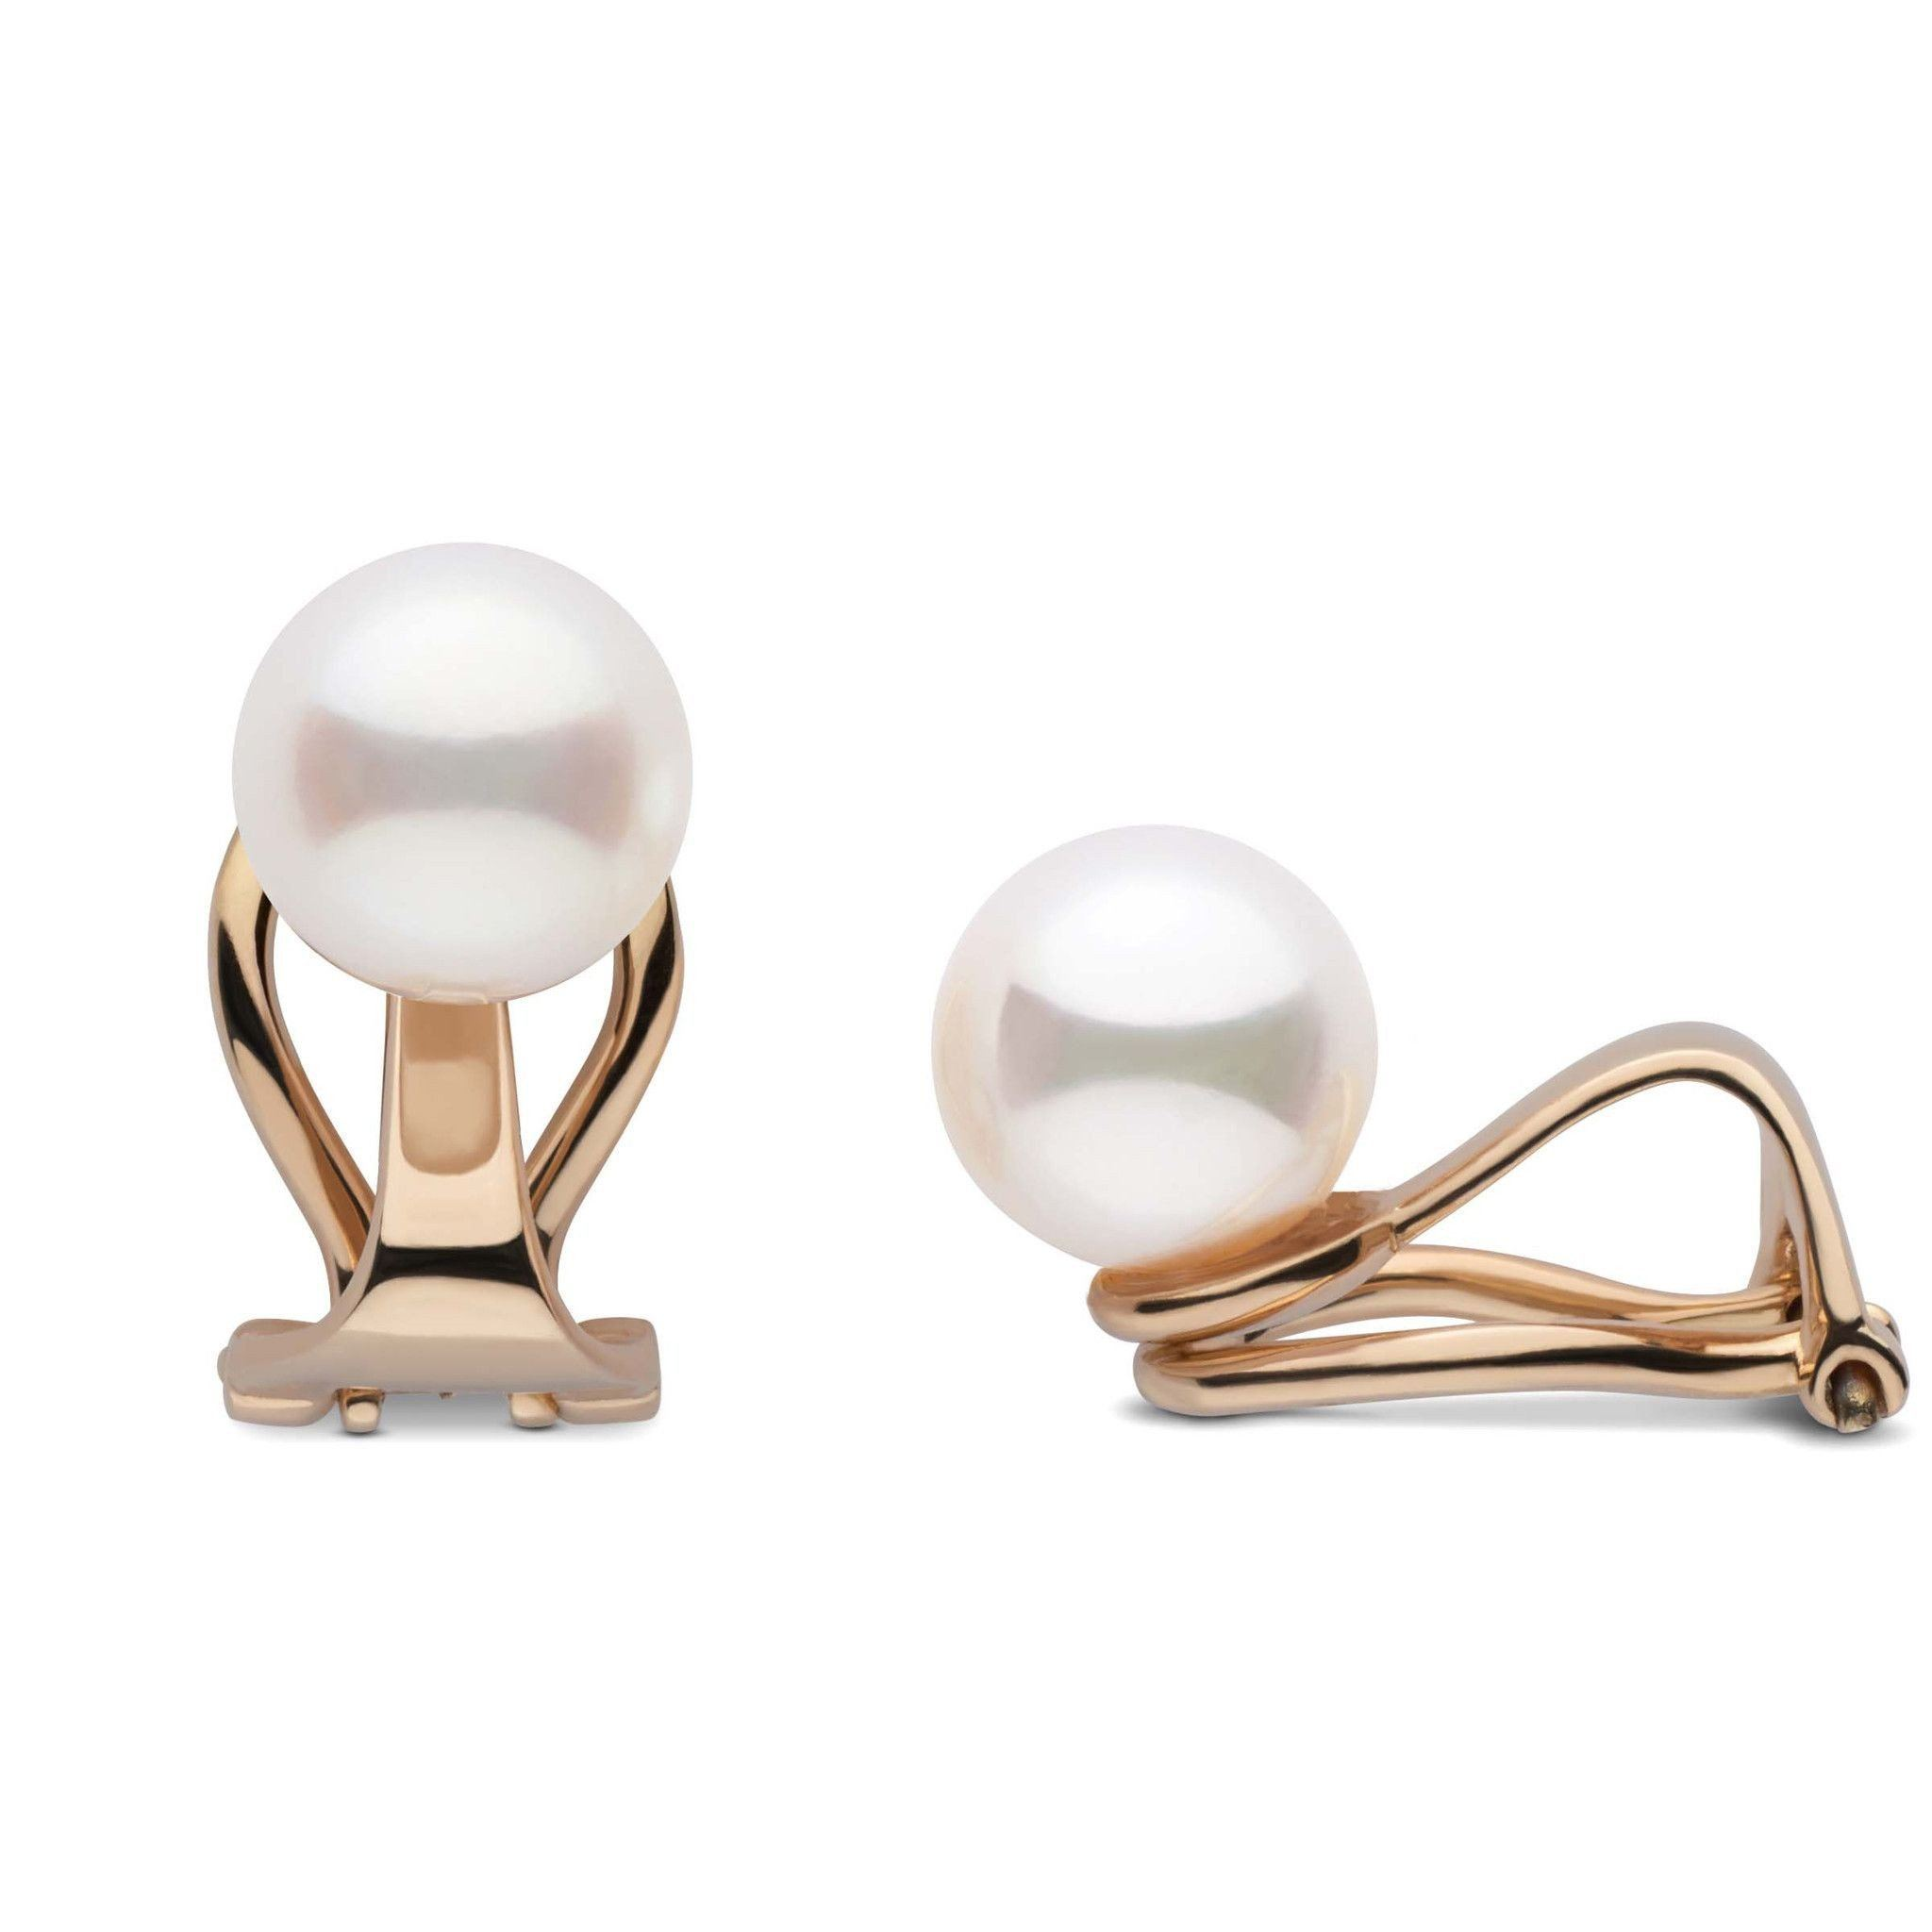 Clip Collection Freshadama 7.5-8.0 mm Pearl Stud Earrings